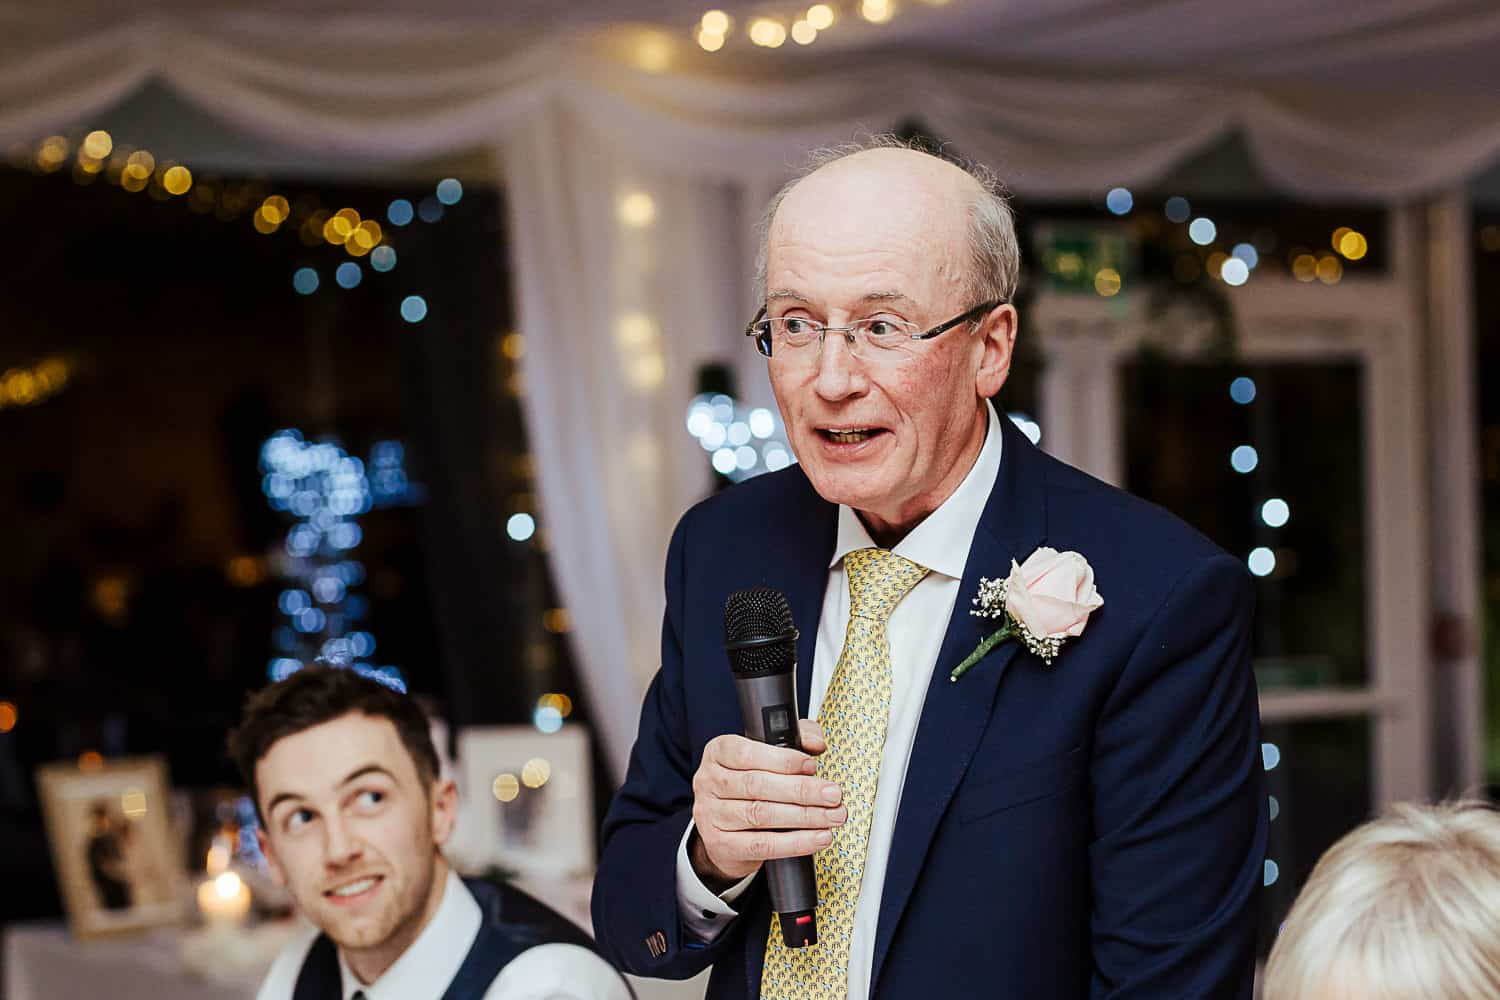 father of the groom giving a wedding speech